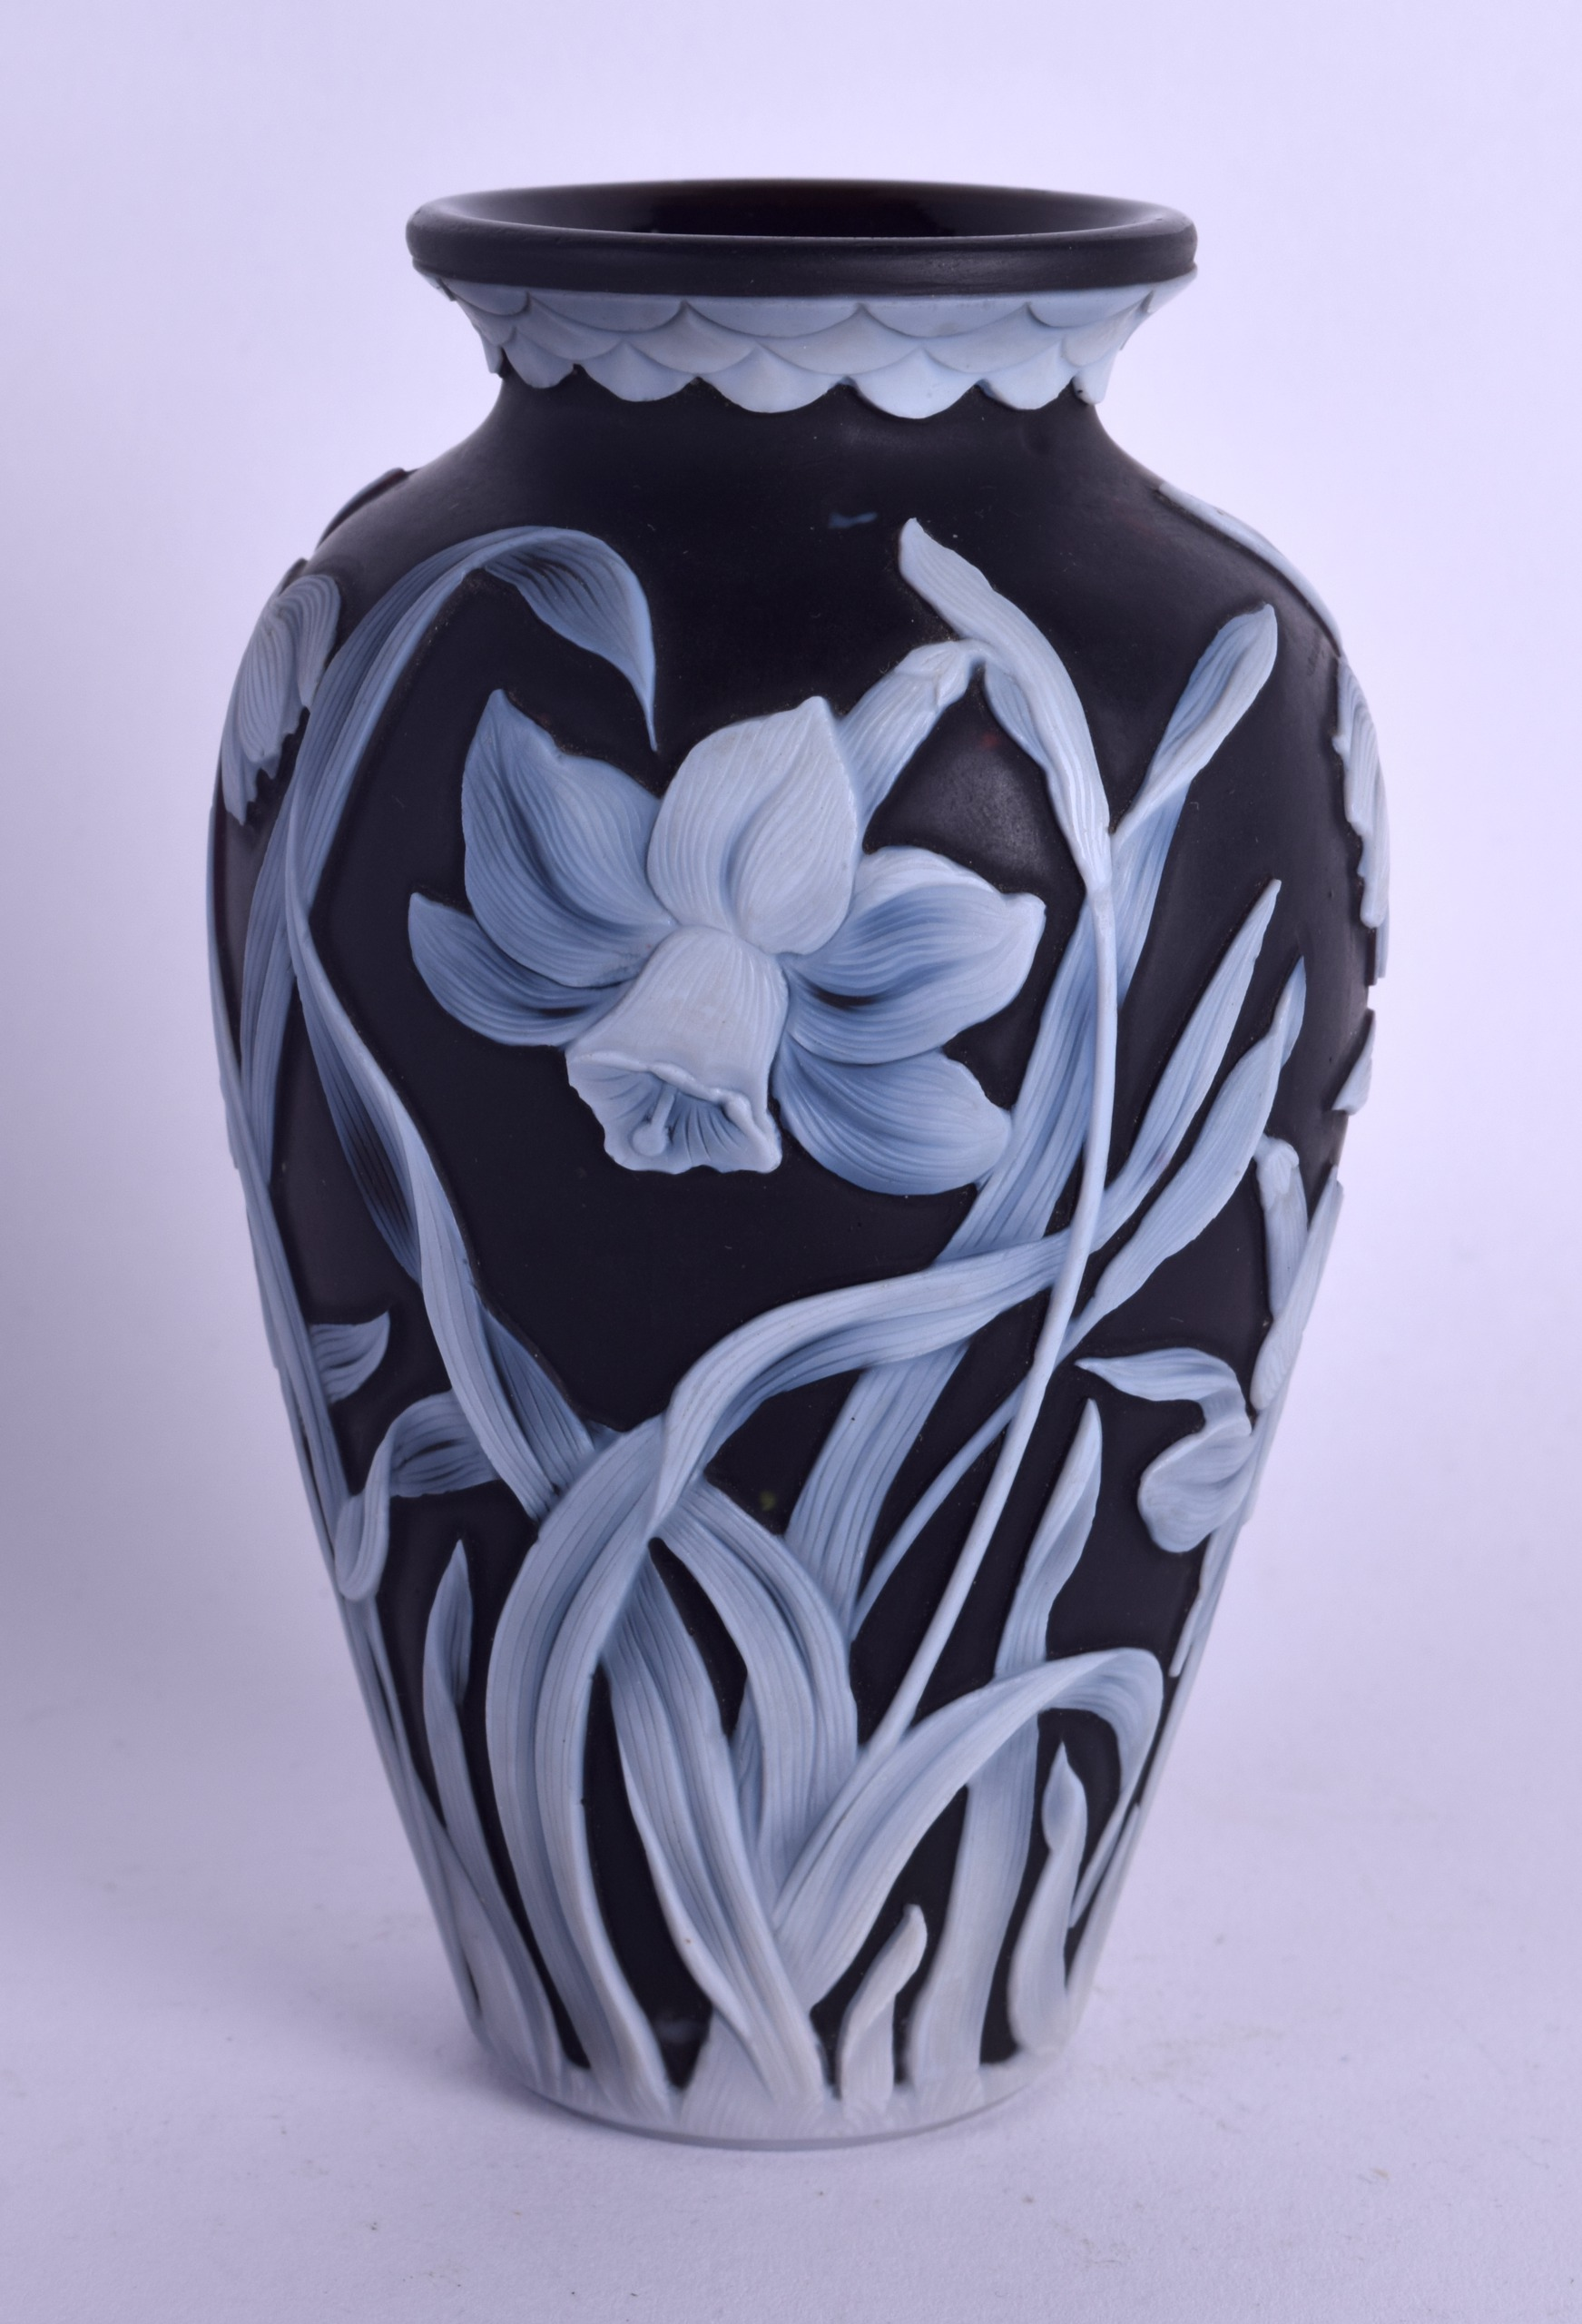 Lot 15 - A FINE ENGLISH BLACK CAMEO GLASS VASE Attributed to Thomas Webb, wonderfully decorated with